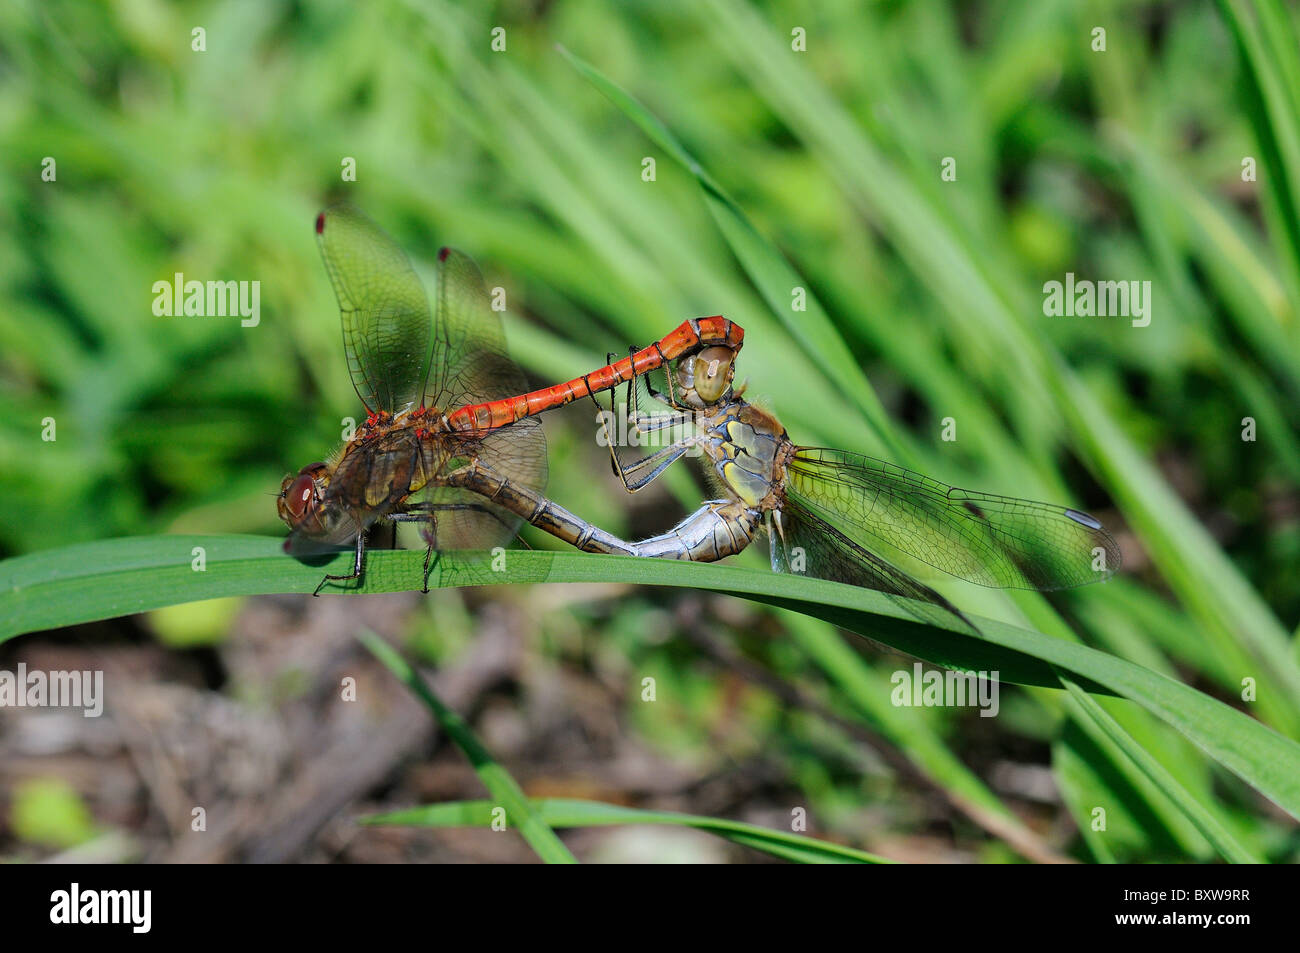 Common Darter Dragonfly (Sympetrum striolatum) pair mating in wheel position on blade of grass, Oxfordshire, UK - Stock Image